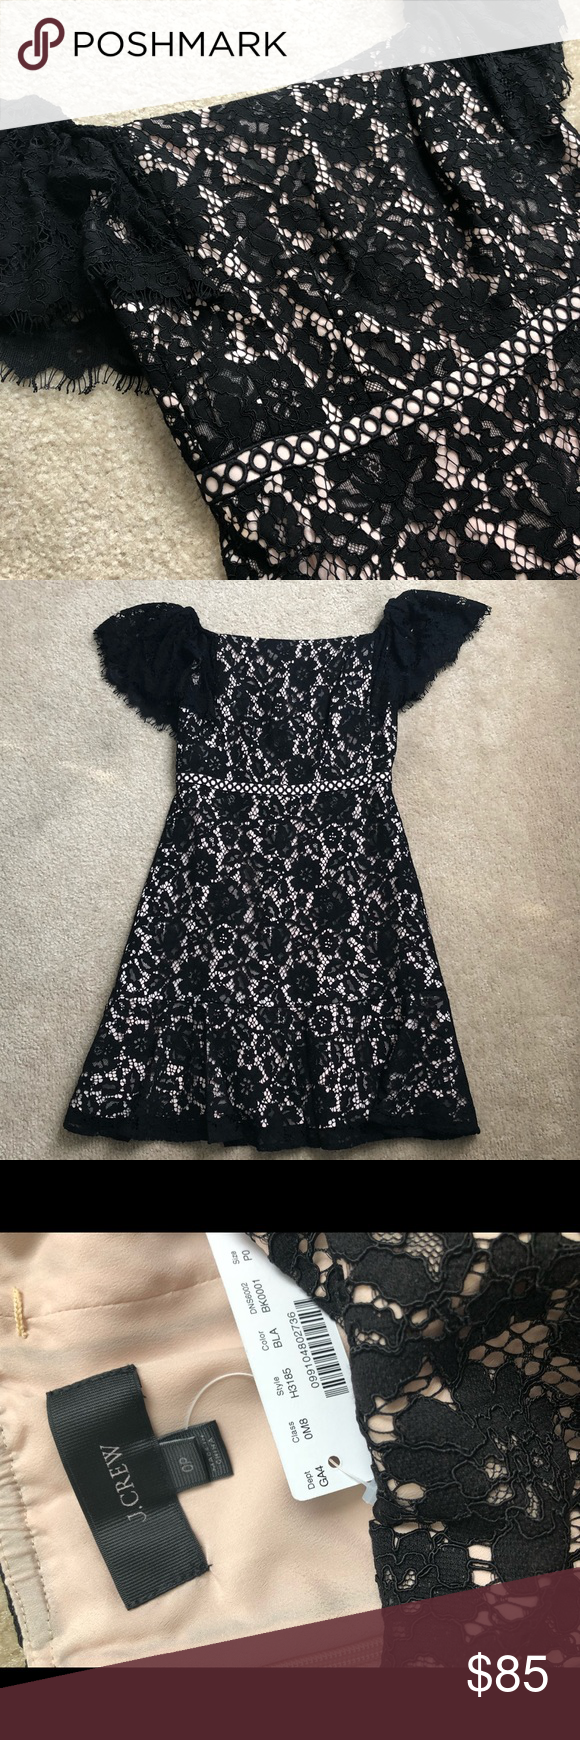 J crew black lace dress  JCREW Off The Shoulder Lace Dress  New with Tags NWT